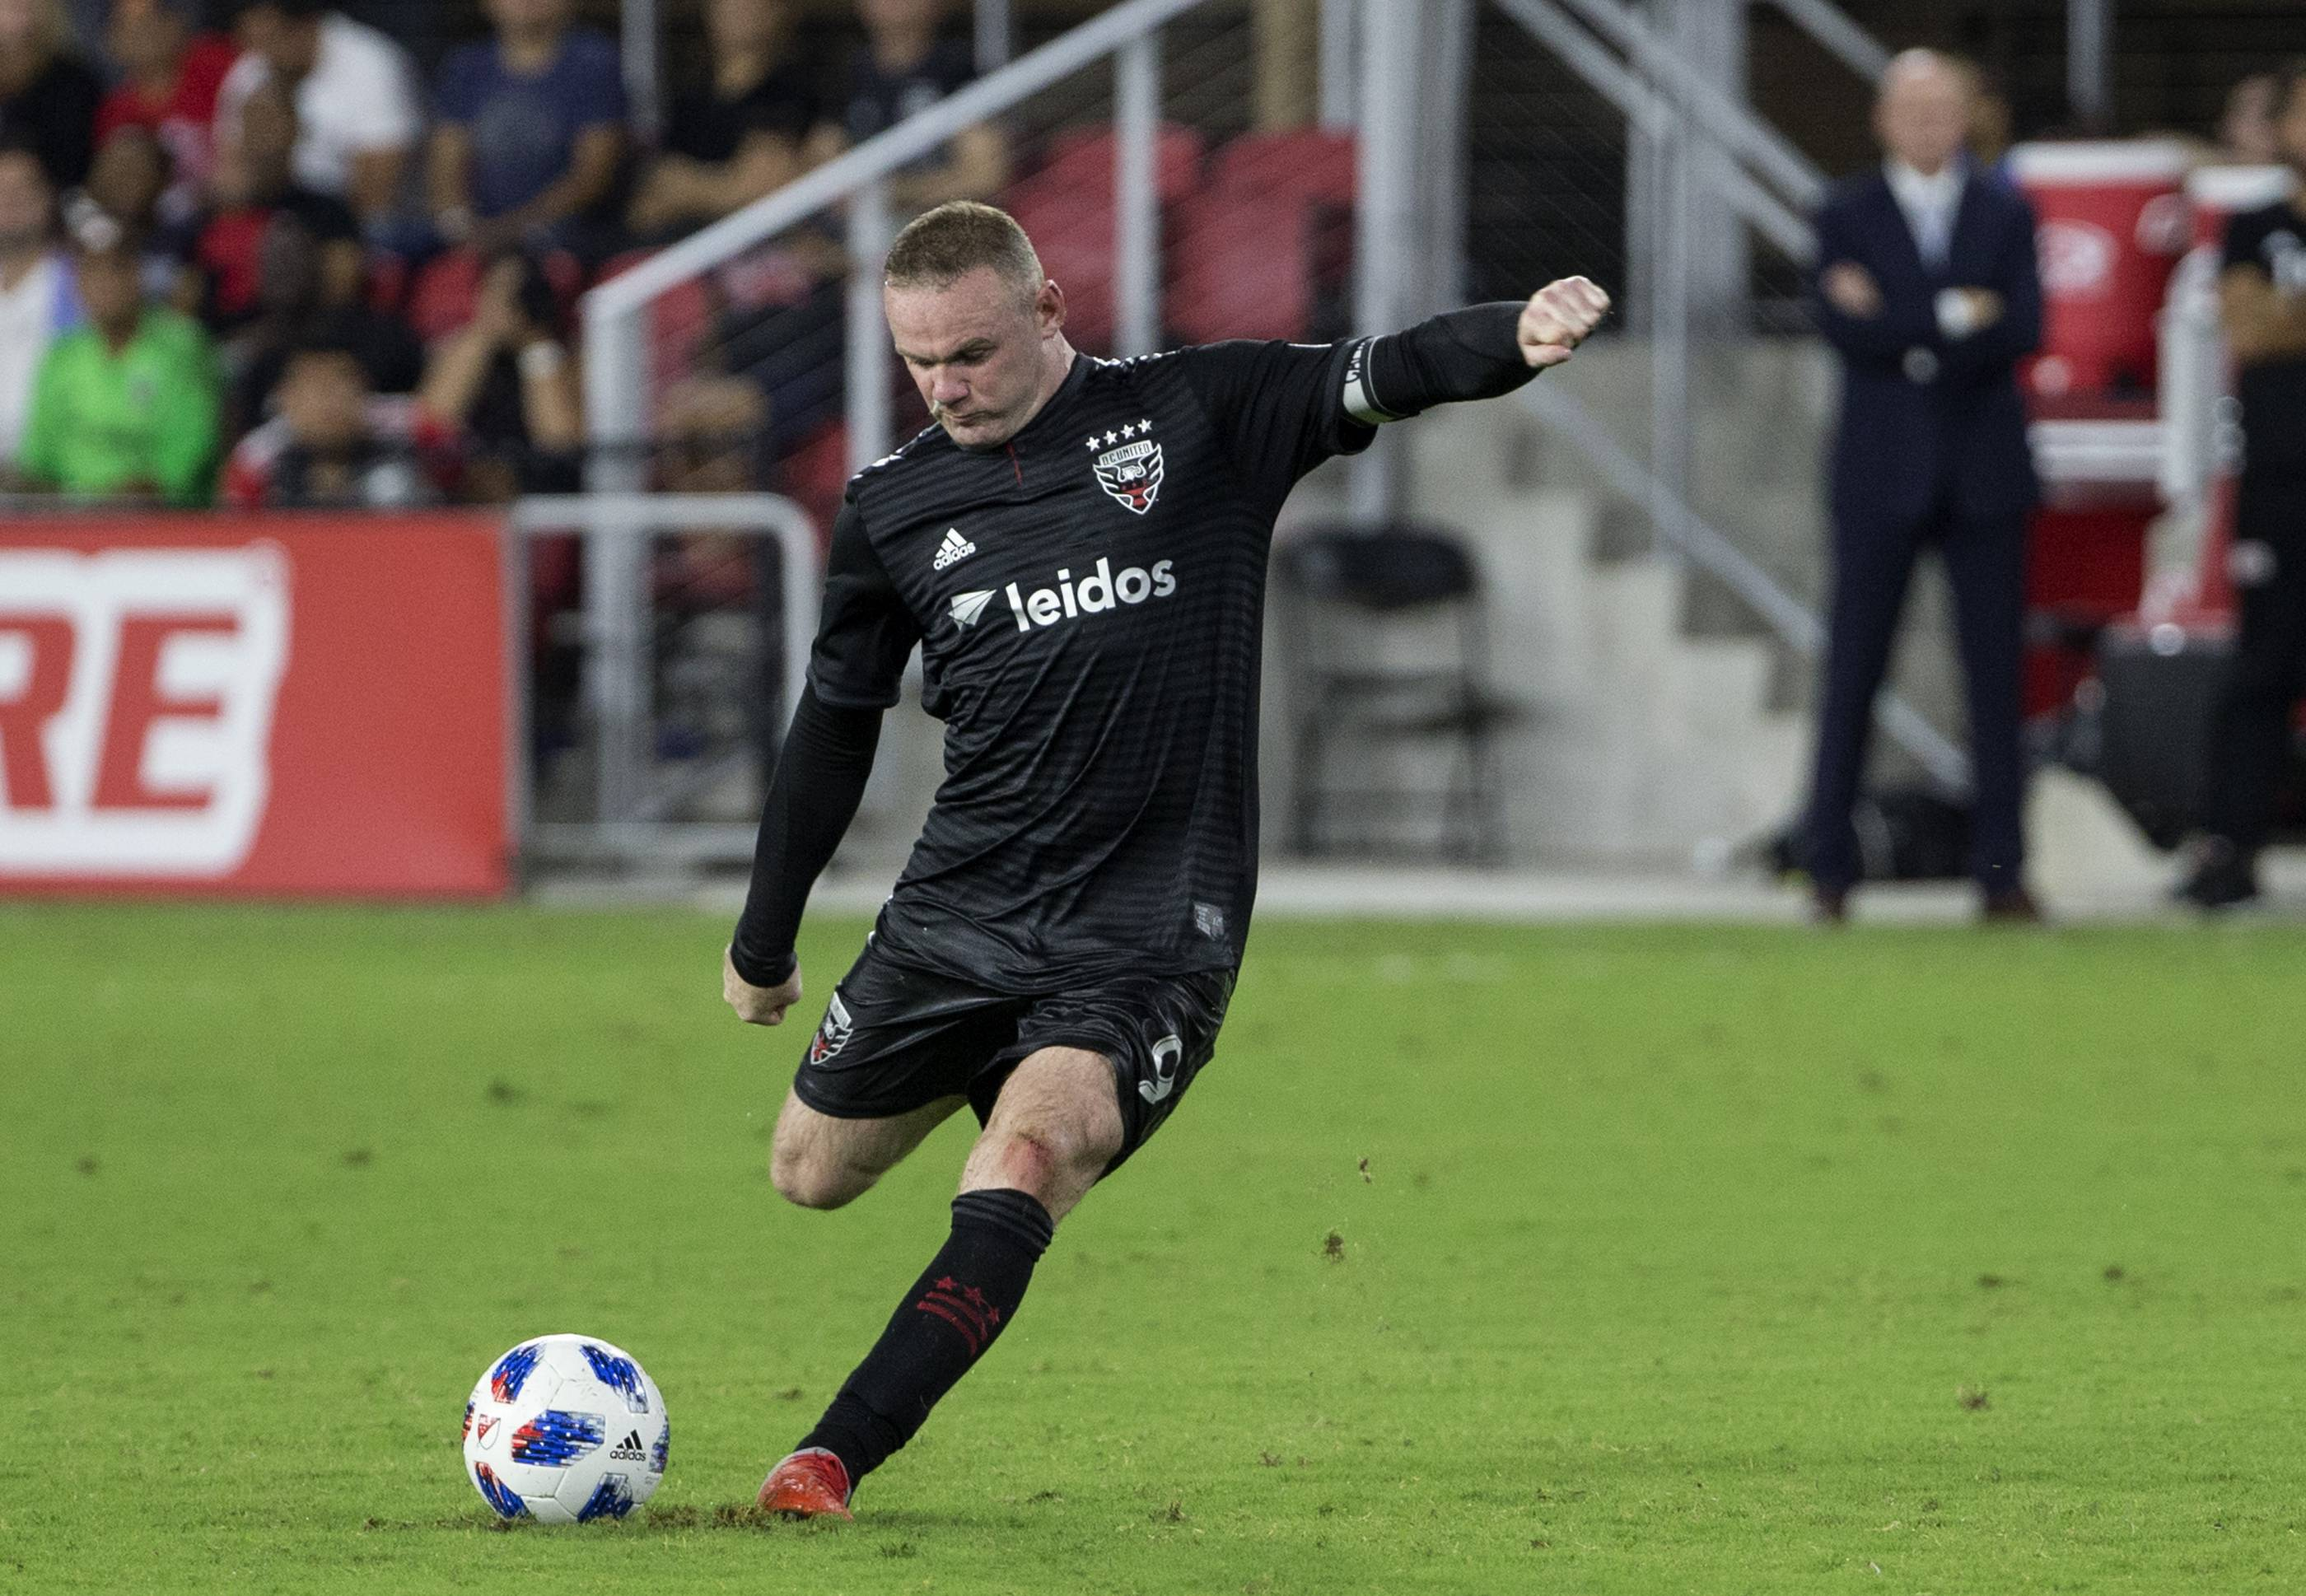 SOCCER: AUG 19 MLS - New England Revolution at DC United